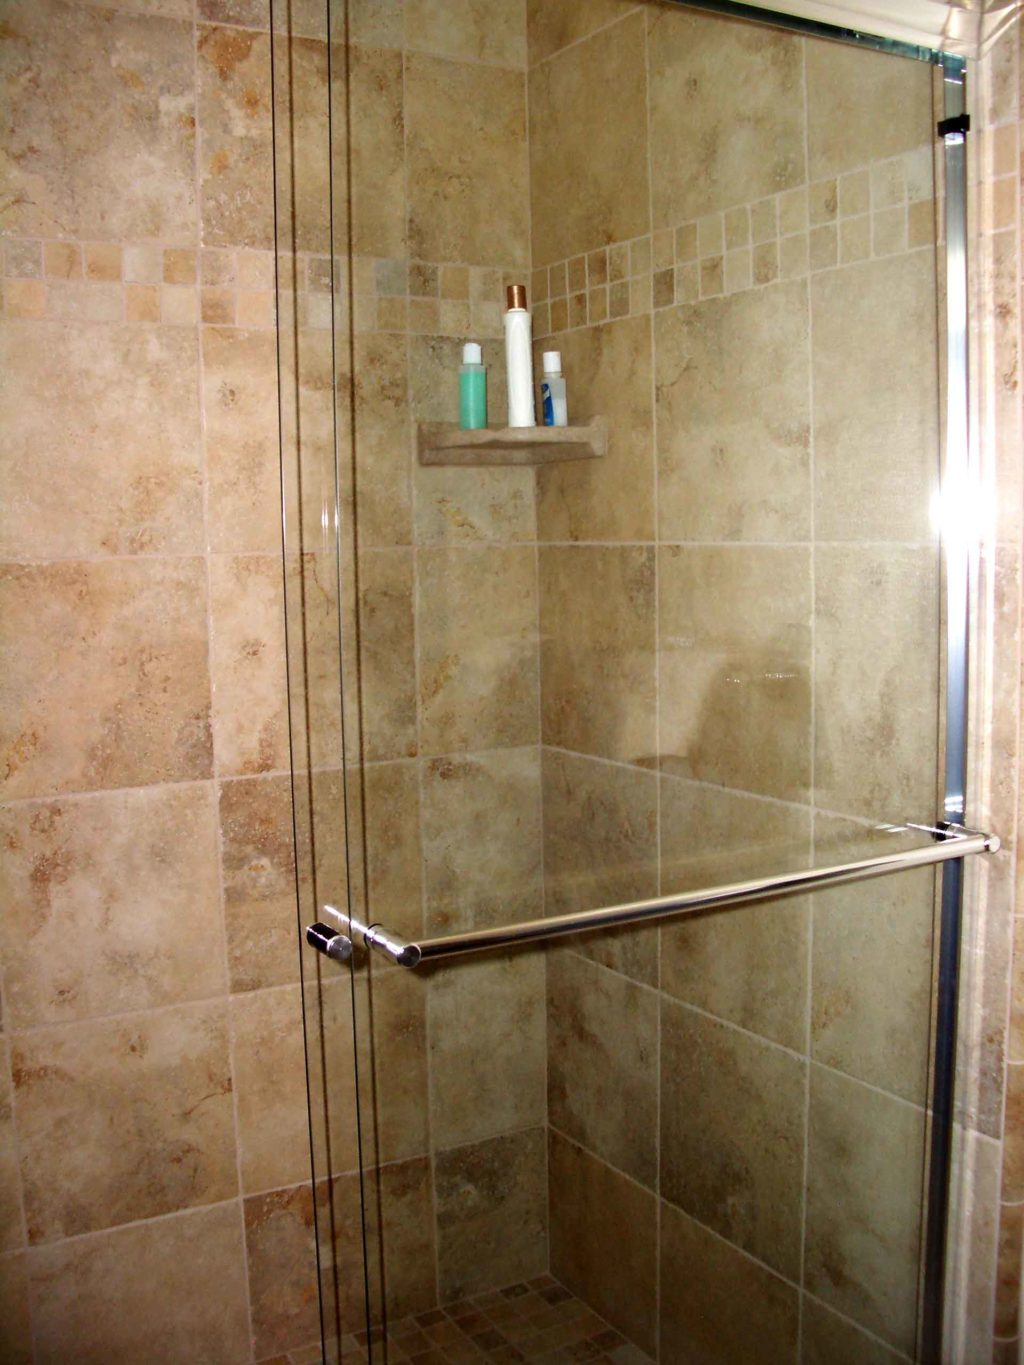 Blog page for women in construction san diego based tile for Bathroom tile designs 2012